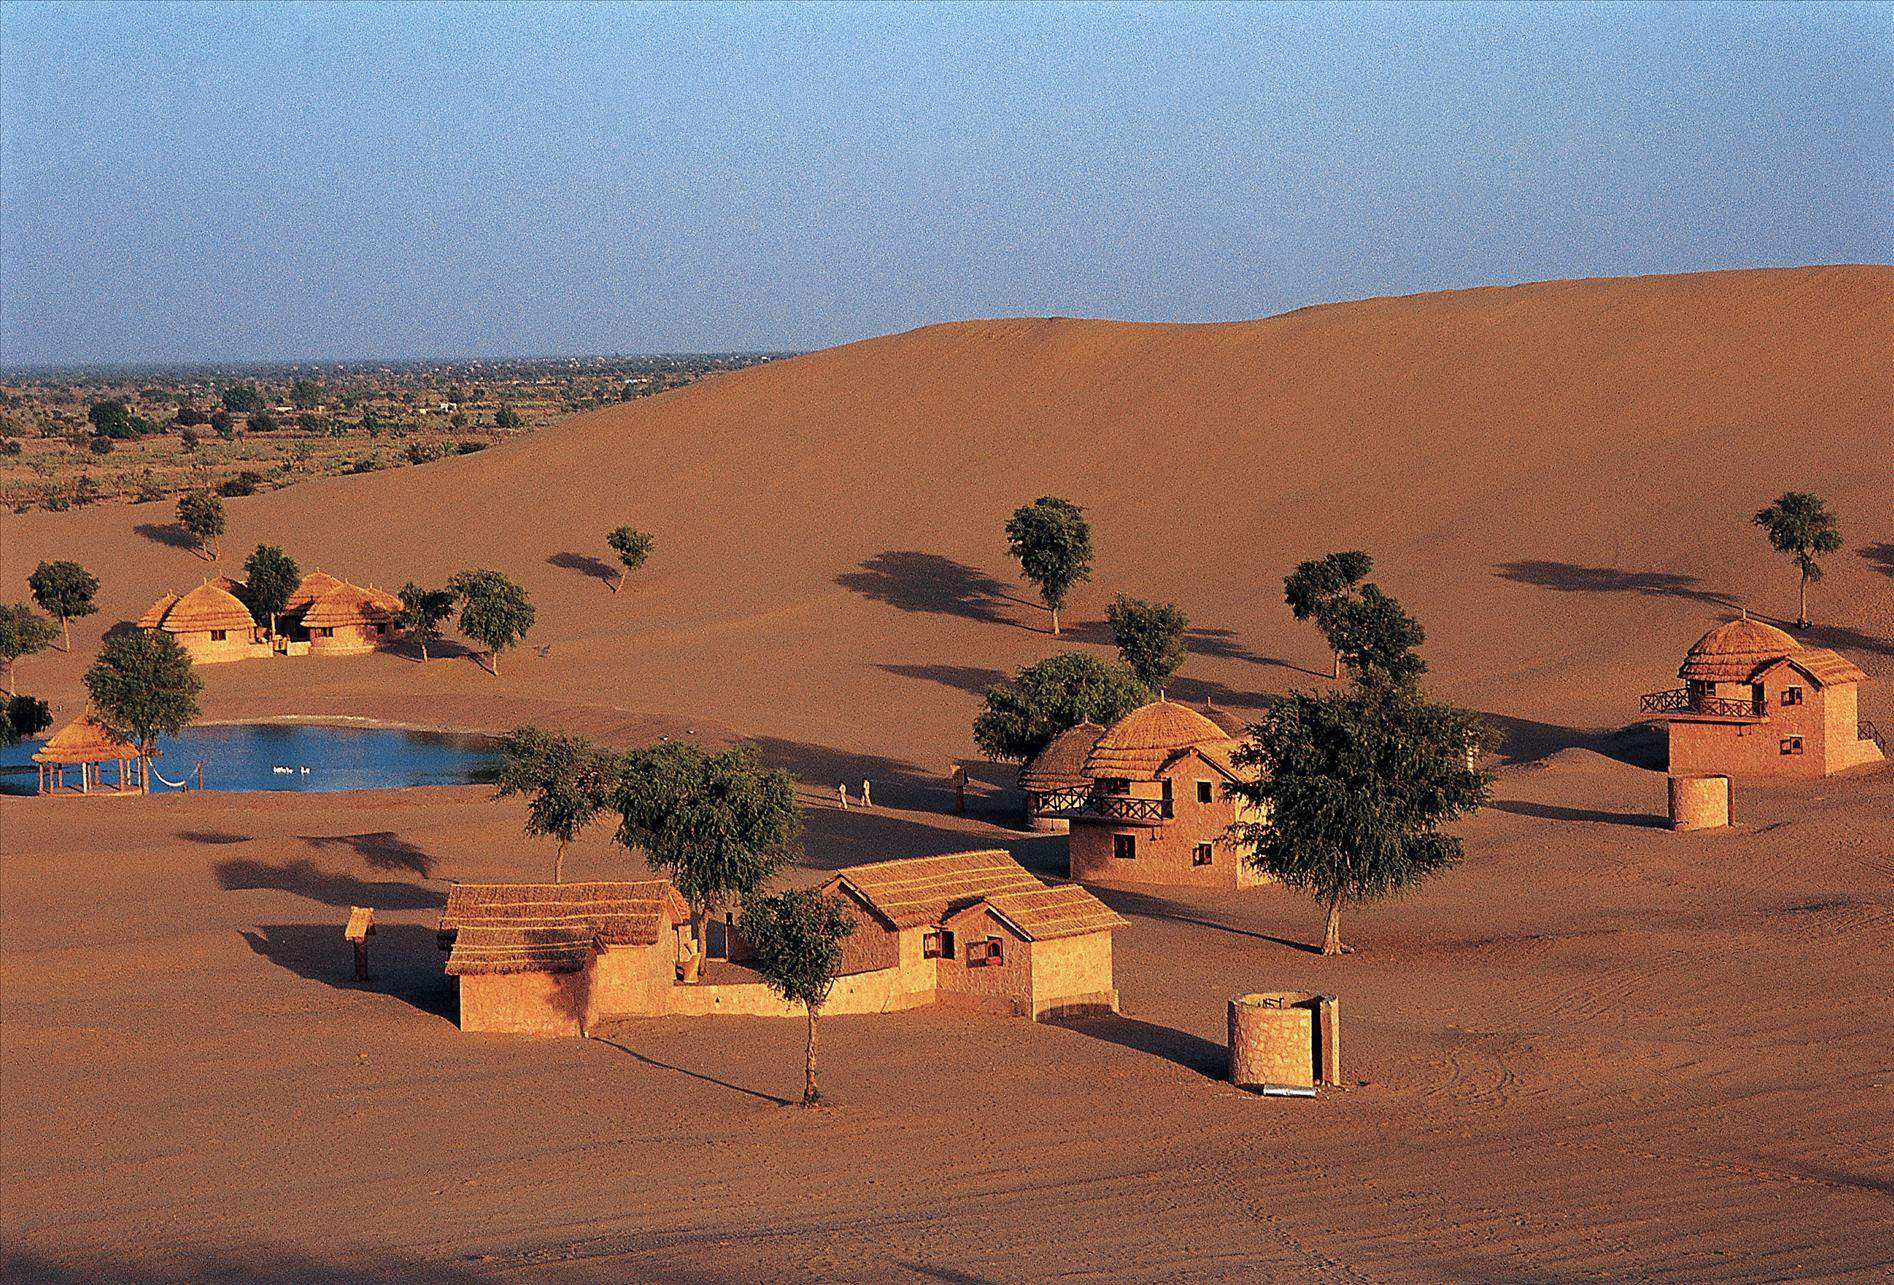 WelcomHotel%20Khimsar%20Fort%20And%20Dunes%20view2.jpg